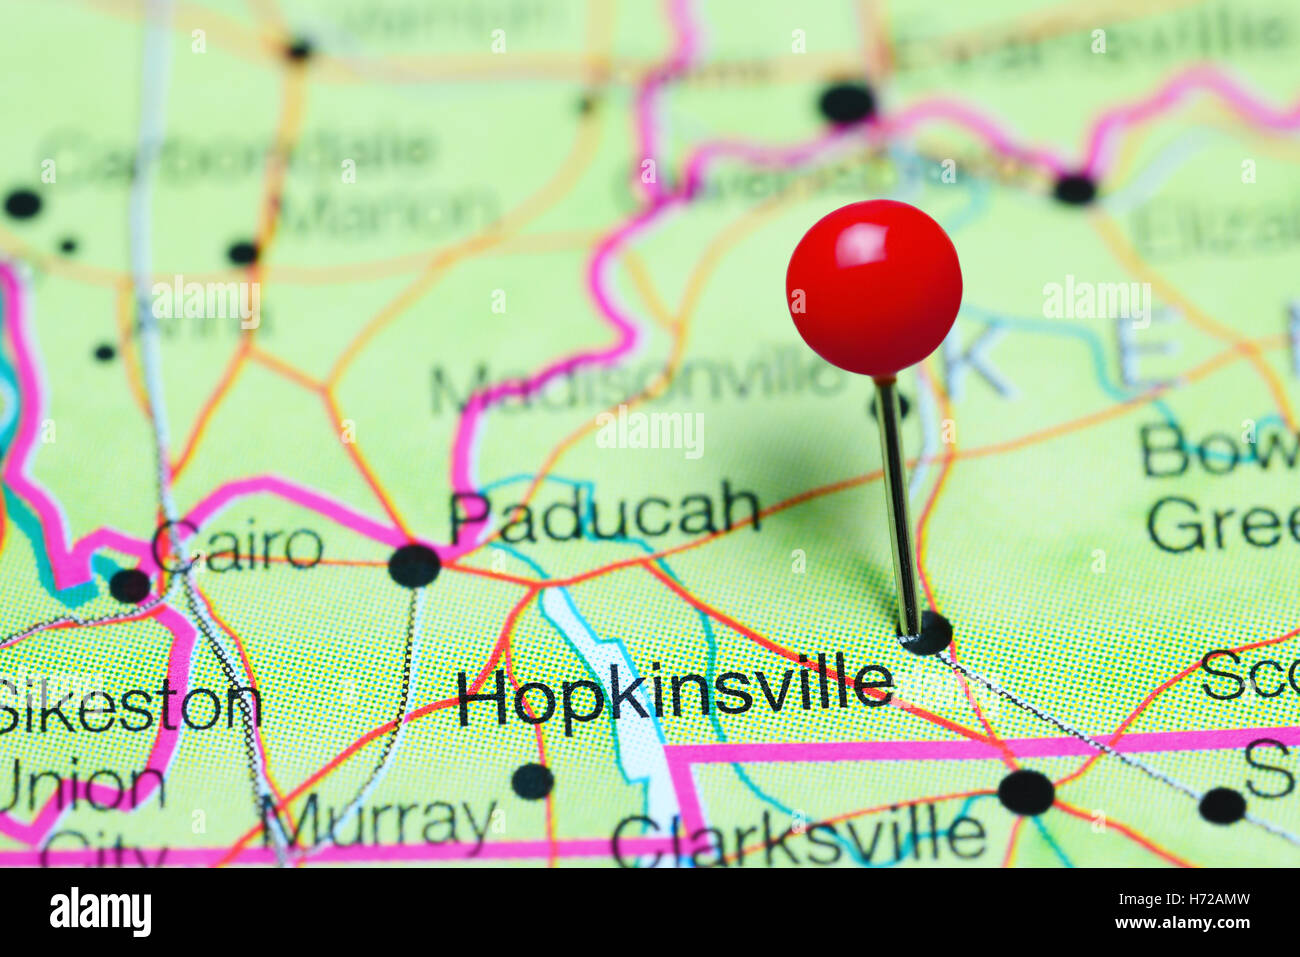 Hopkinsville pinned on a map of Kentucky USA Stock Photo Royalty